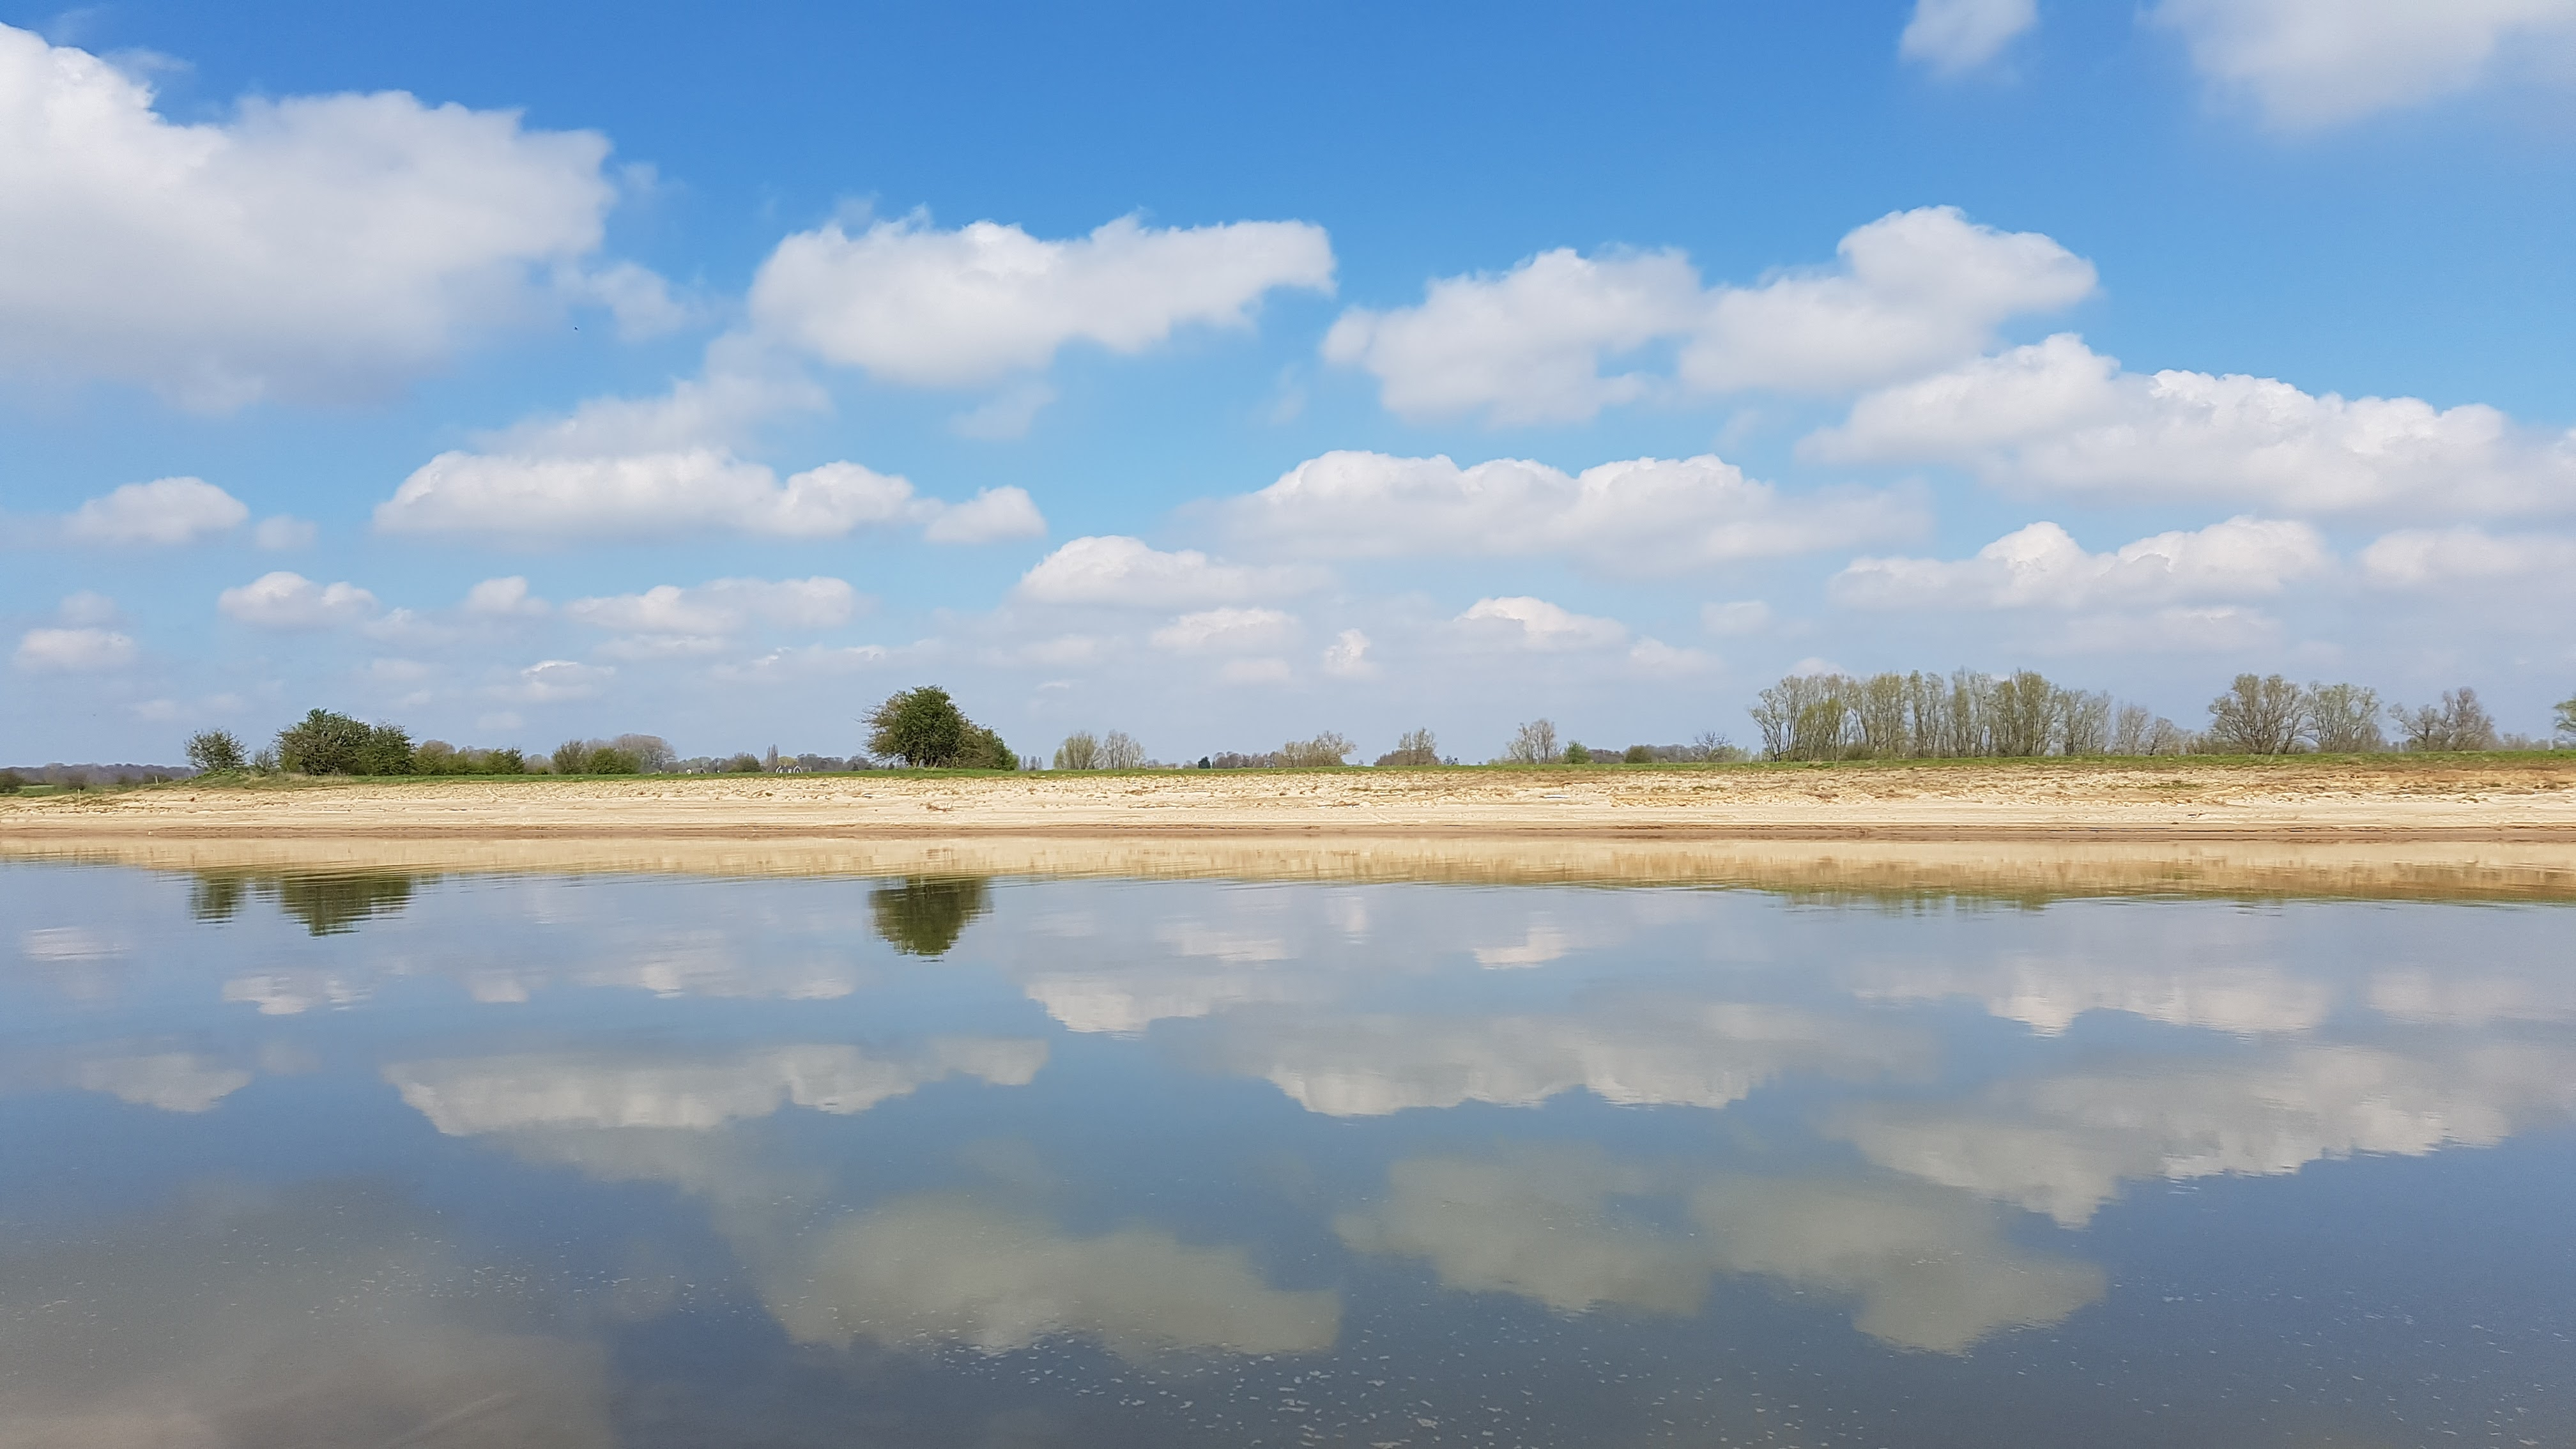 Reflection-of-blue-sky-and-white-clouds-in-water-like mirror, Reflection-of-blue-sky-and-white-clouds-in-water-like mirror